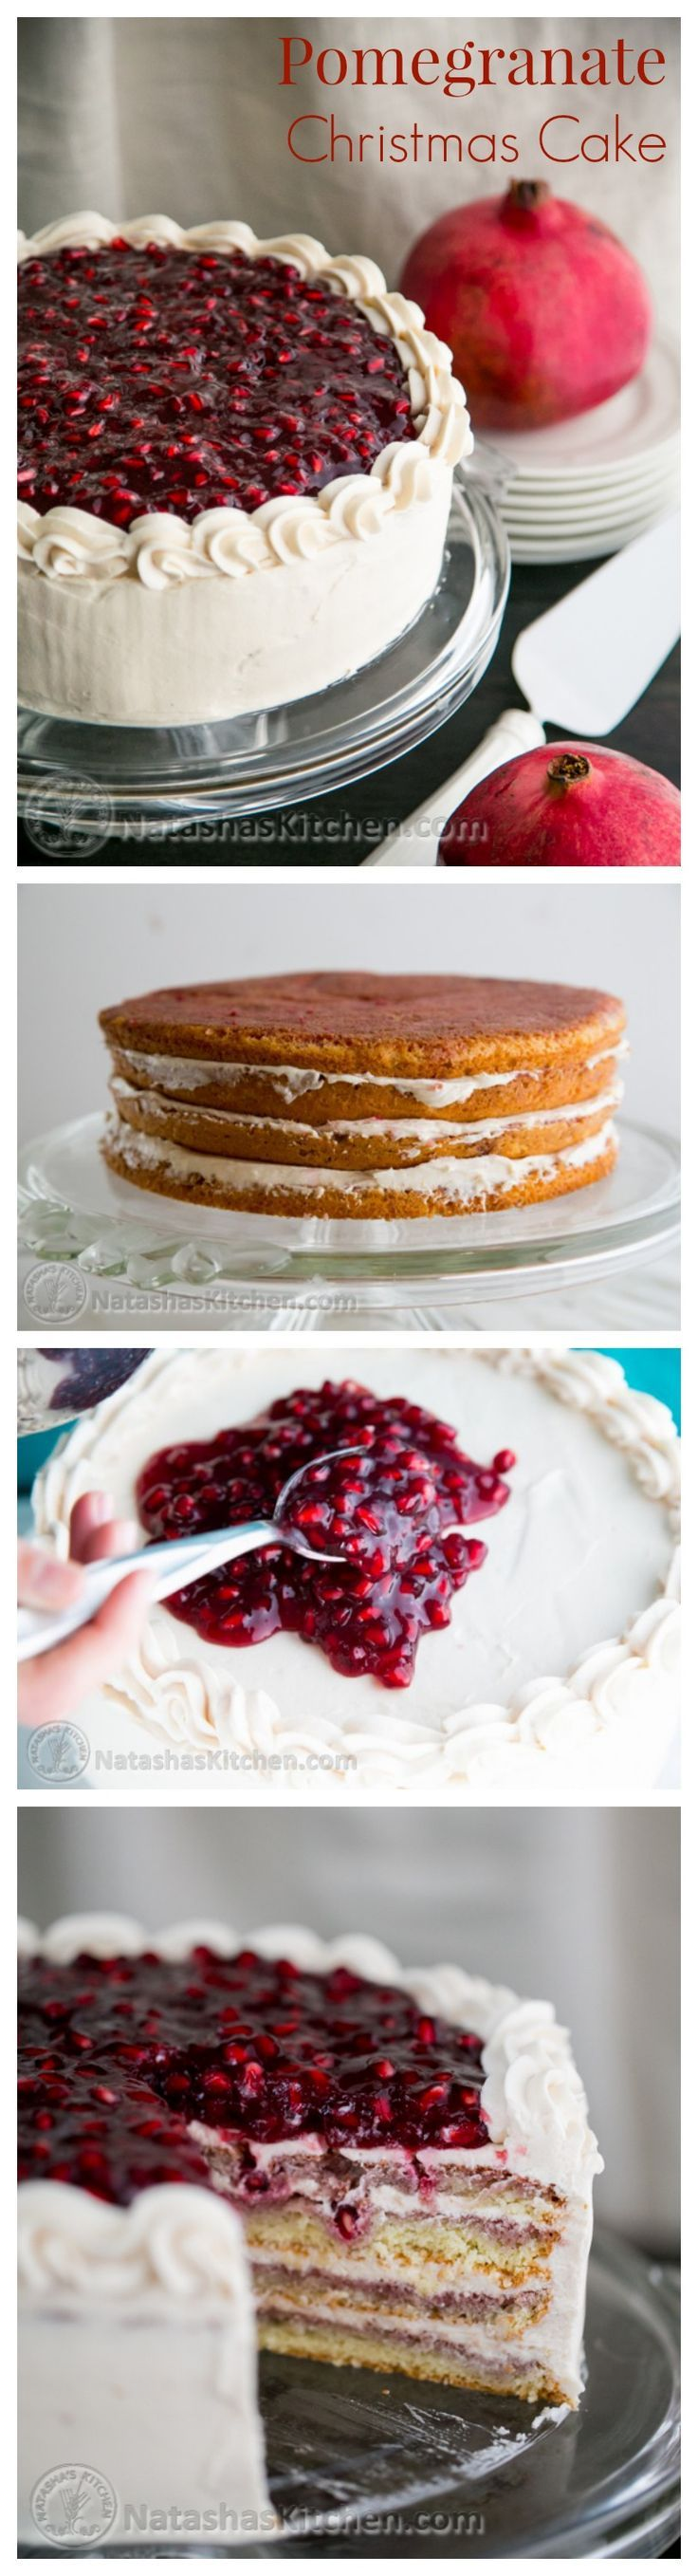 This Christmas cake is fantastic top to bottom. It's moist, beautiful, and is crowned with a pomegranate topping that will wow a crowd @natashaskitchen